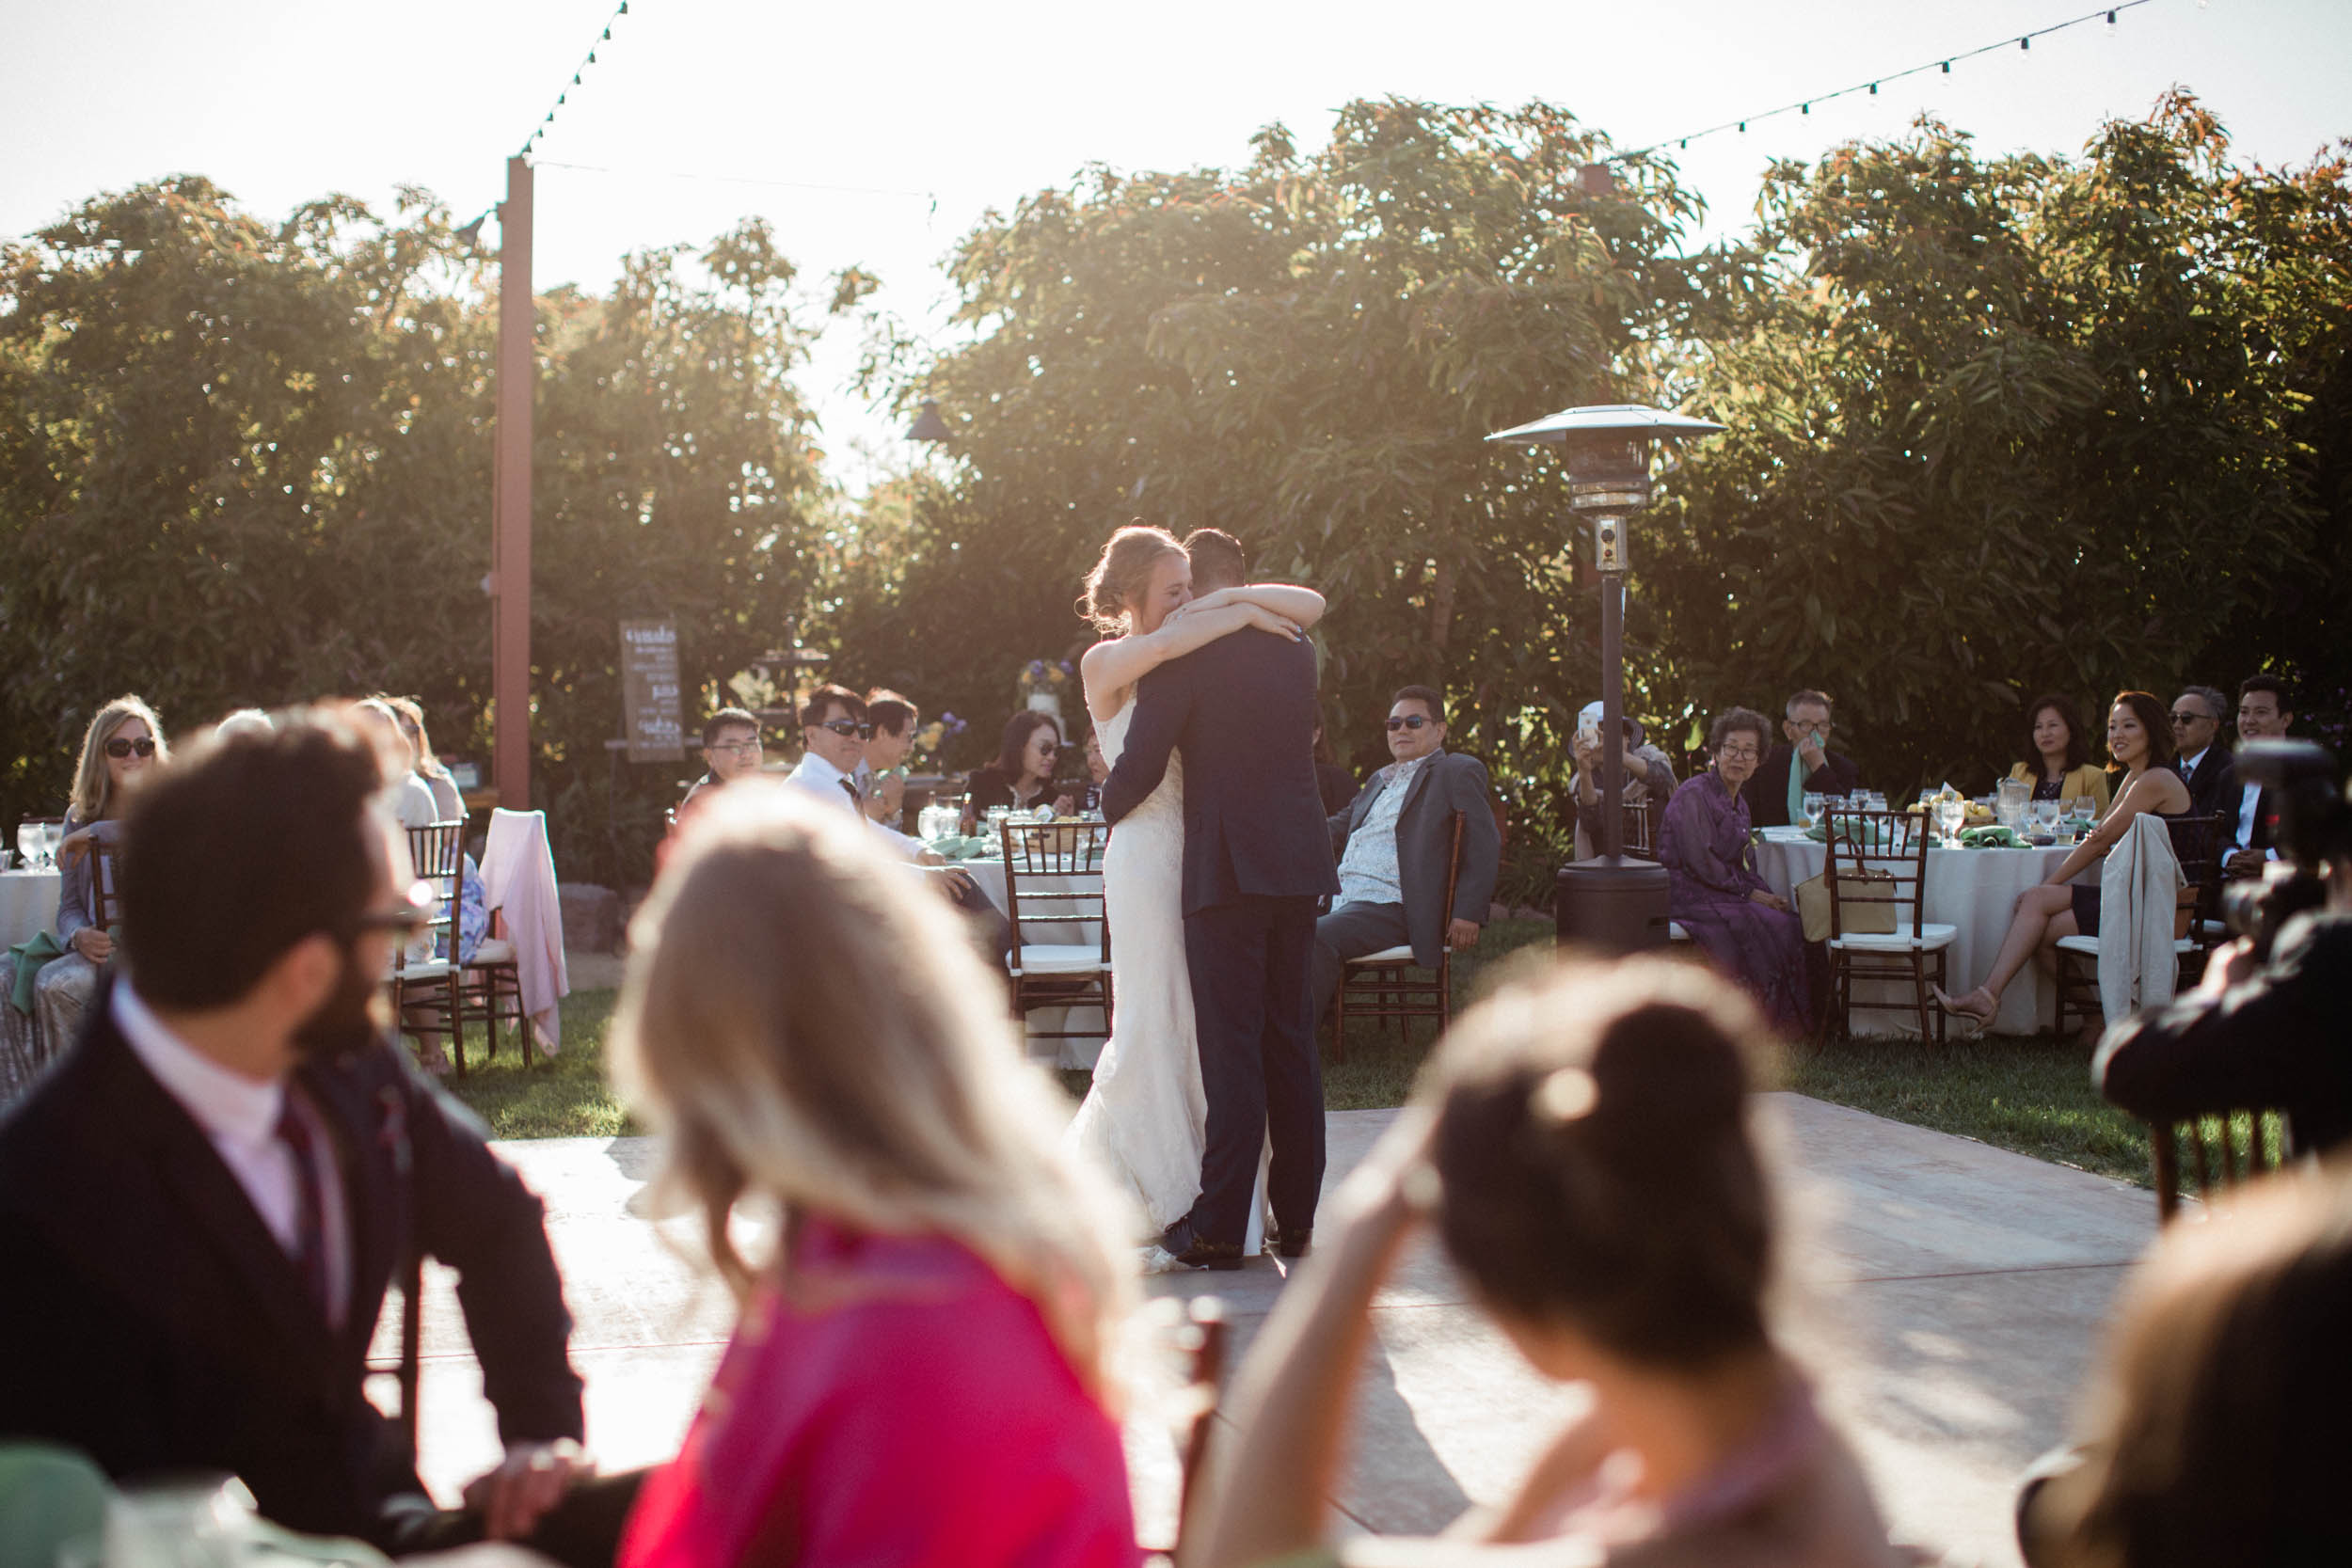 BKM-Photography-Gerry-Ranch-Southern-California-Wedding-0129.jpg